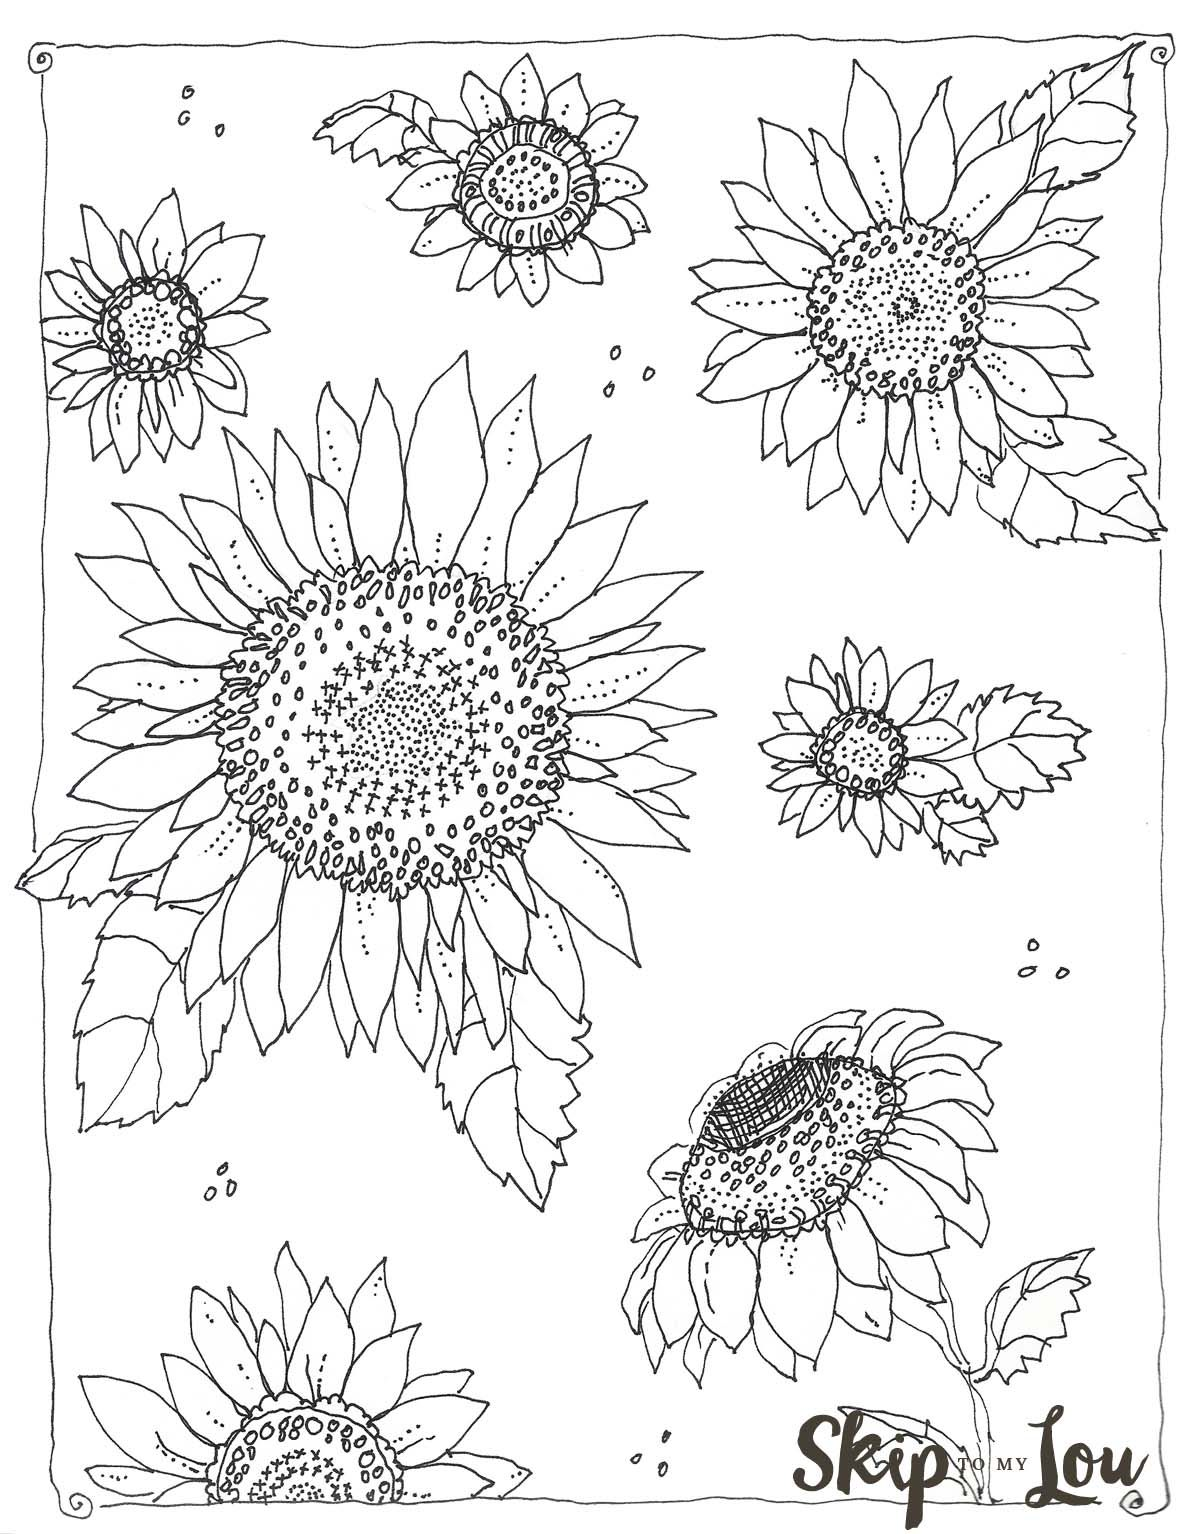 Sunflower coloring page were celebrating kansas day at skip to my lou with this free printable